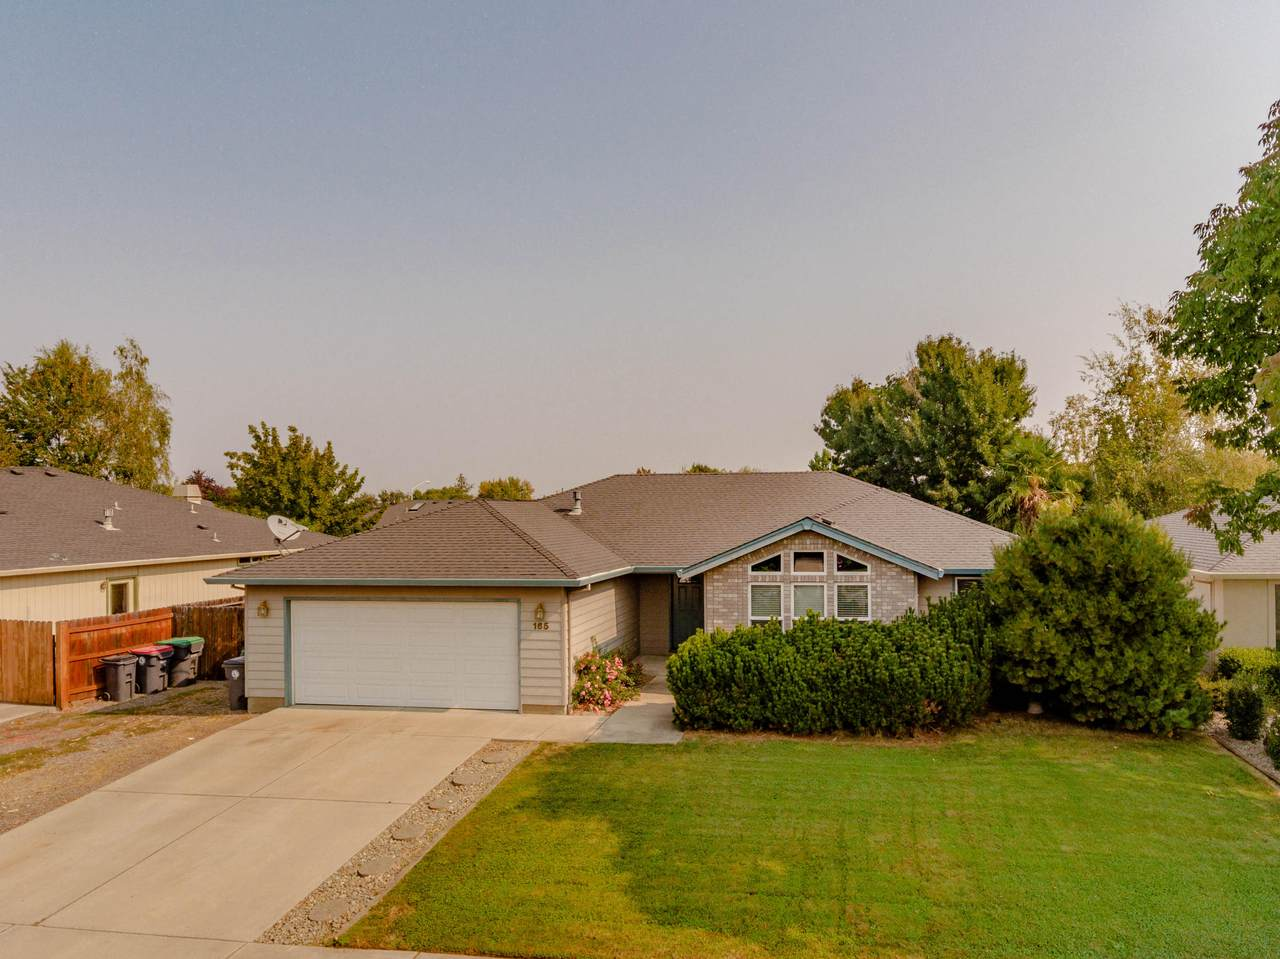 165 Willow Bend Way - Photo 1